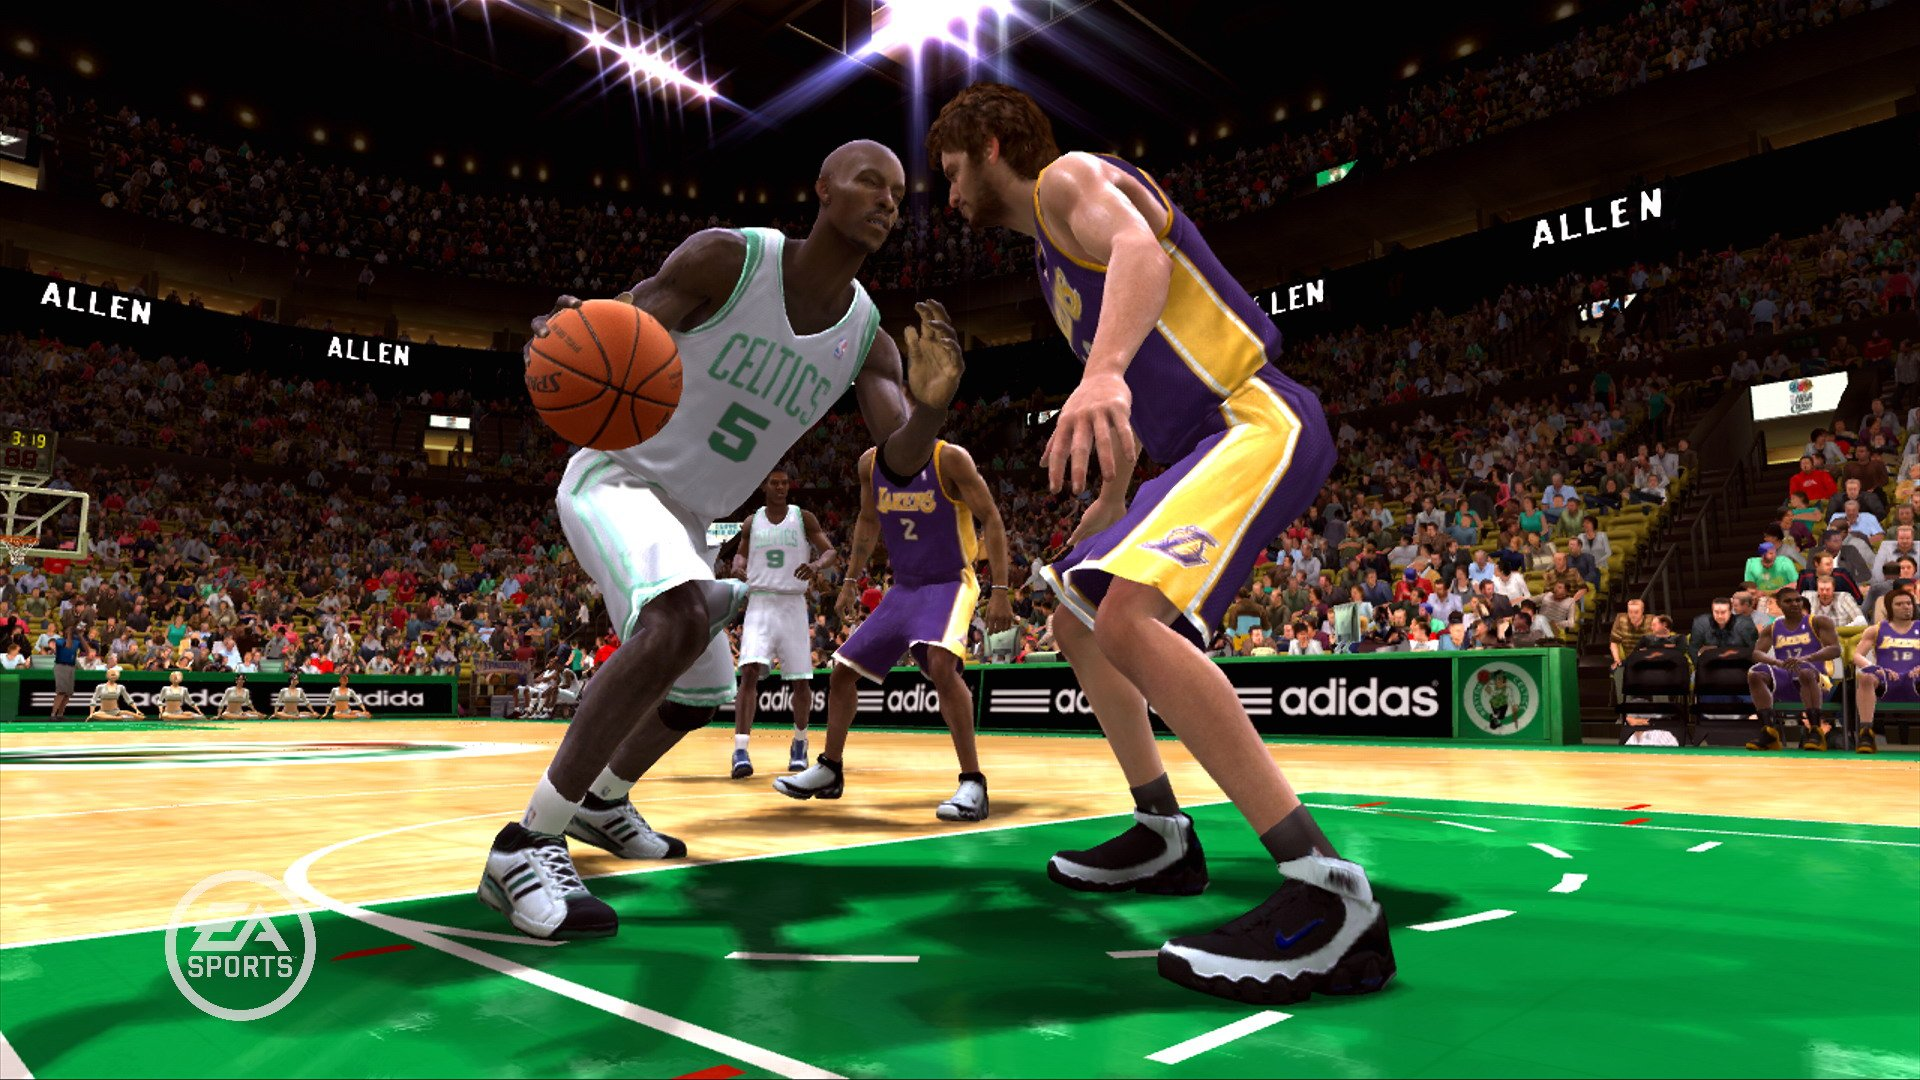 Download free software What Network Is The Nba Game On ...